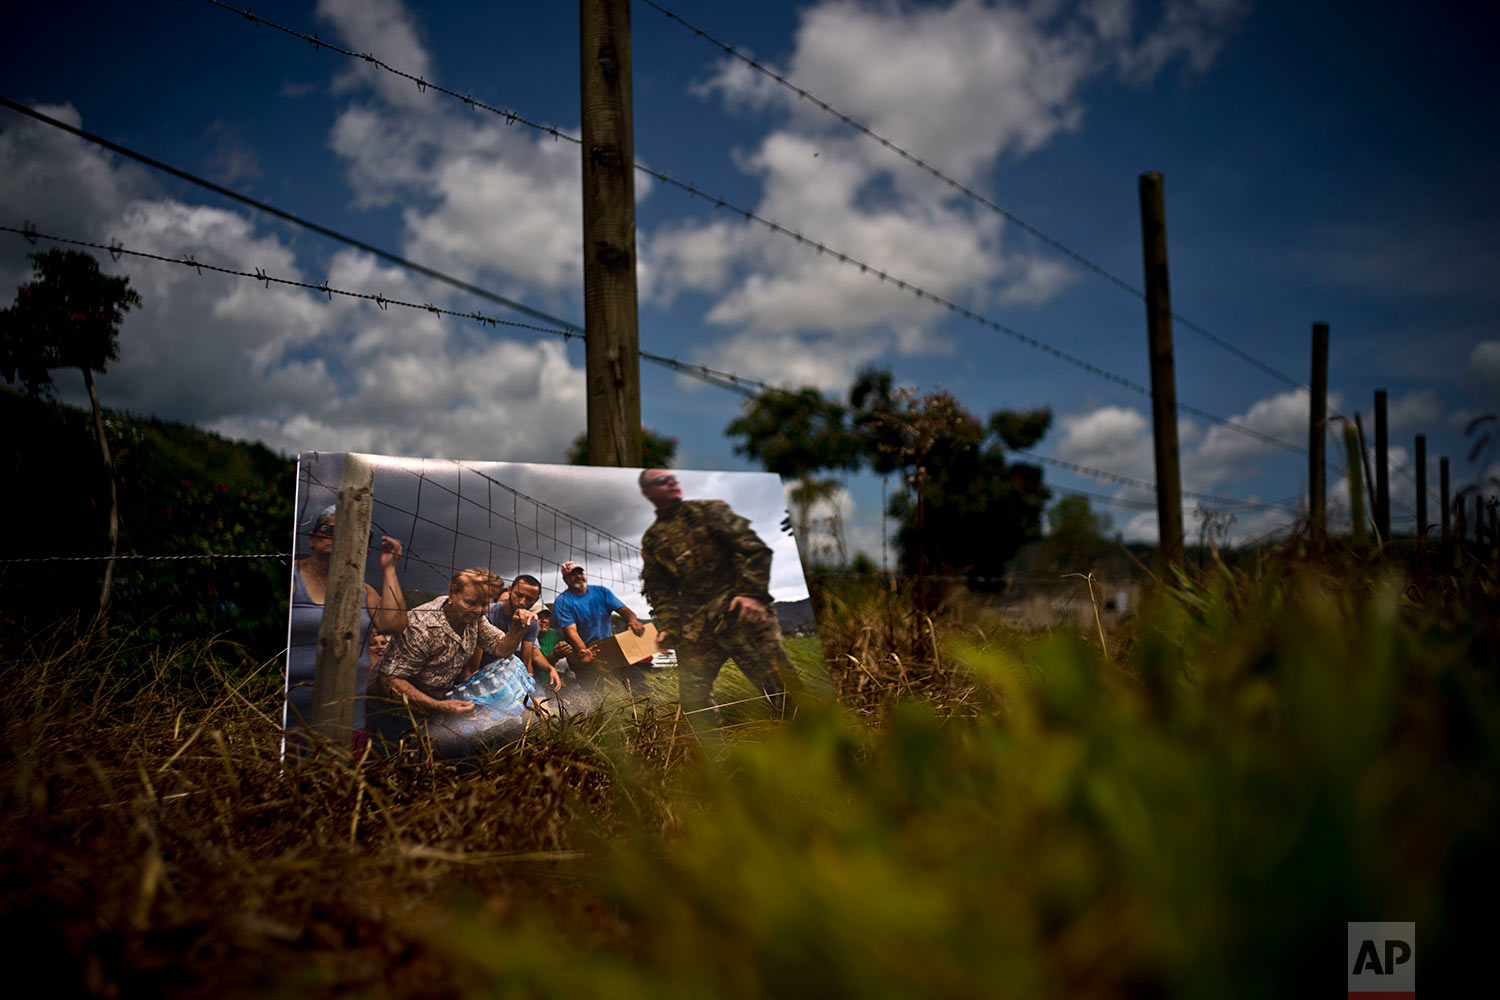 A printed photograph taken on Oct. 7, 2017 sits at the same spot where Puerto Rican National Guards delivered food and water to desperate residents in the aftermath of Hurricane Maria in the San Lorenzo neighborhood of Morovis, Puerto Rico, May 26, 2018. (AP Photo/Ramon Espinosa)